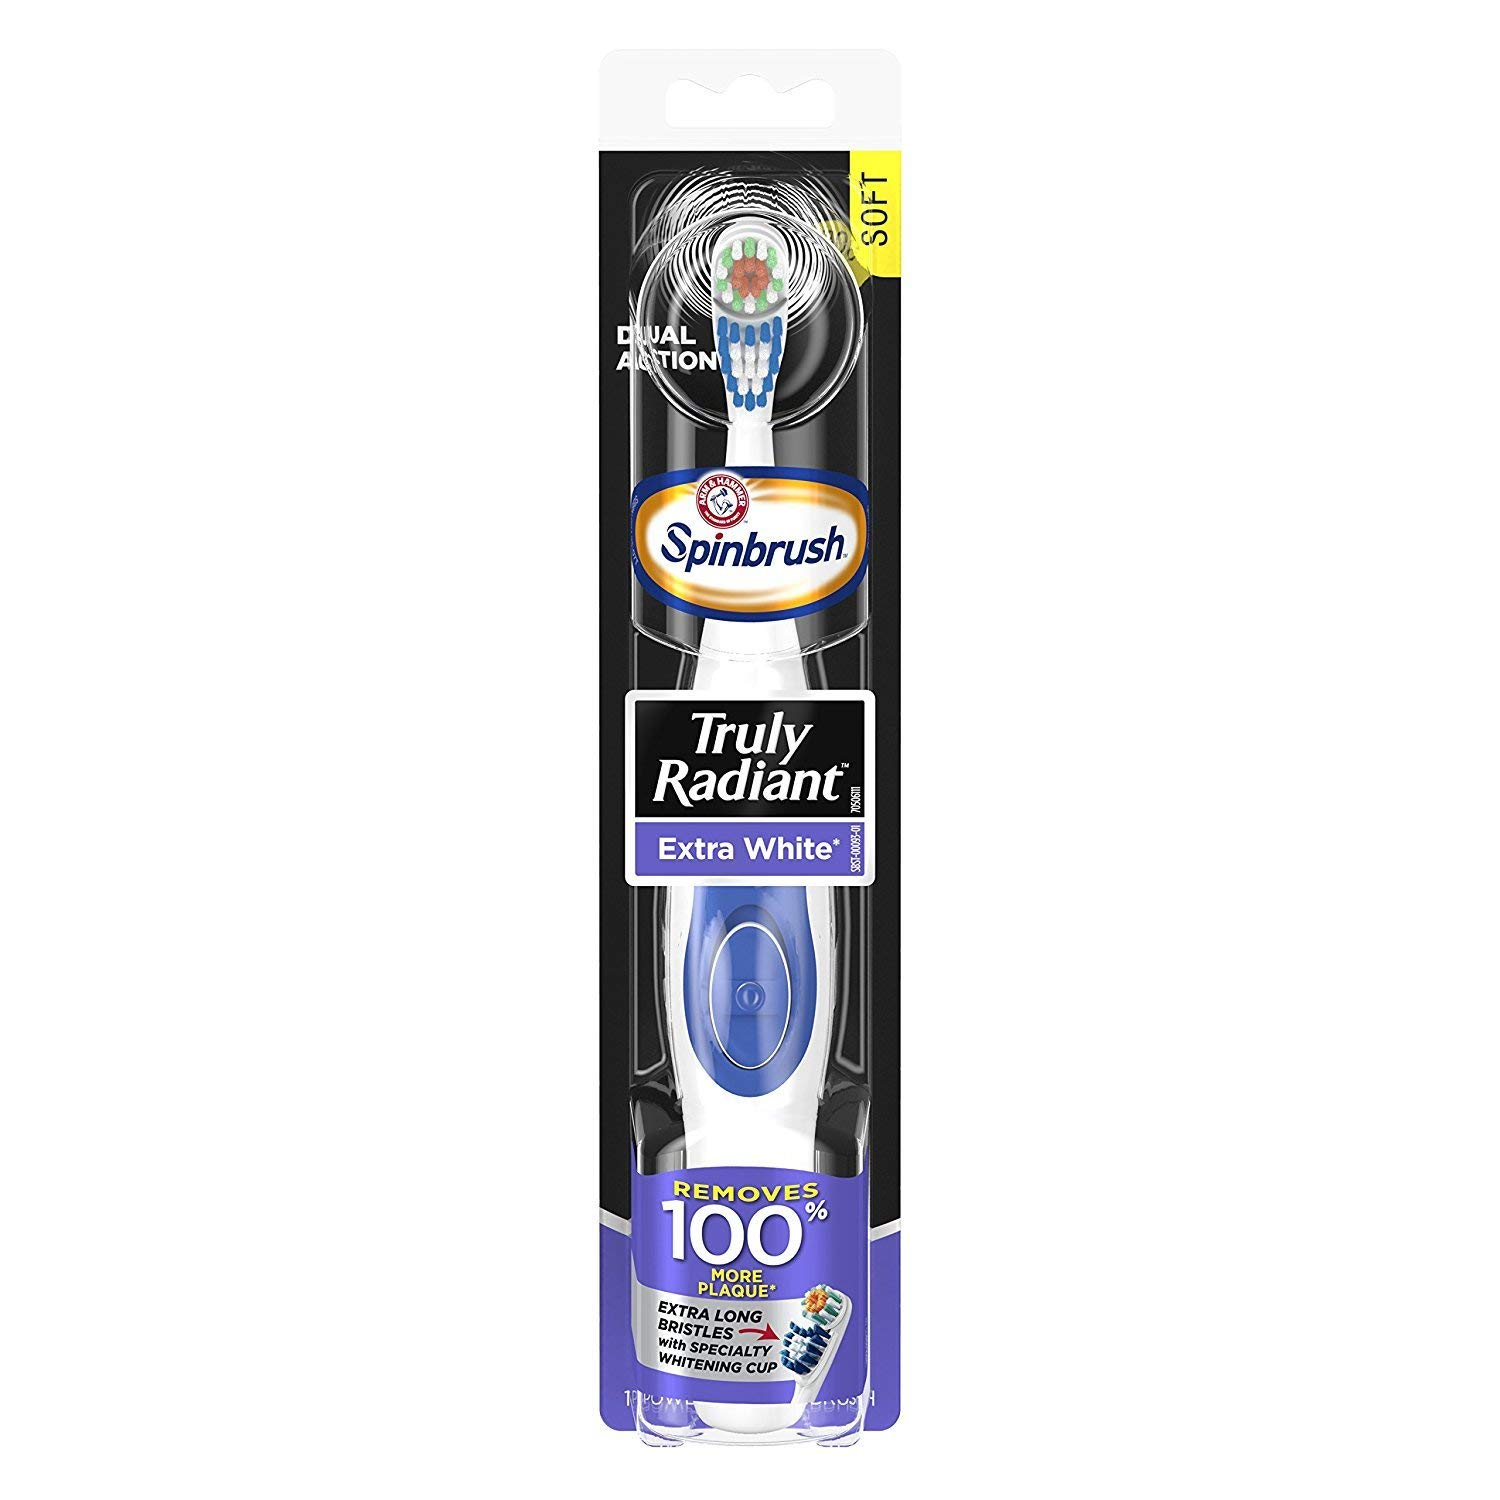 ARM & HAMMER Spinbrush Powered Truly Radiant Toothbrush, Extra White, Soft 1 ea by Arm & Hammer B00M1T2OZW